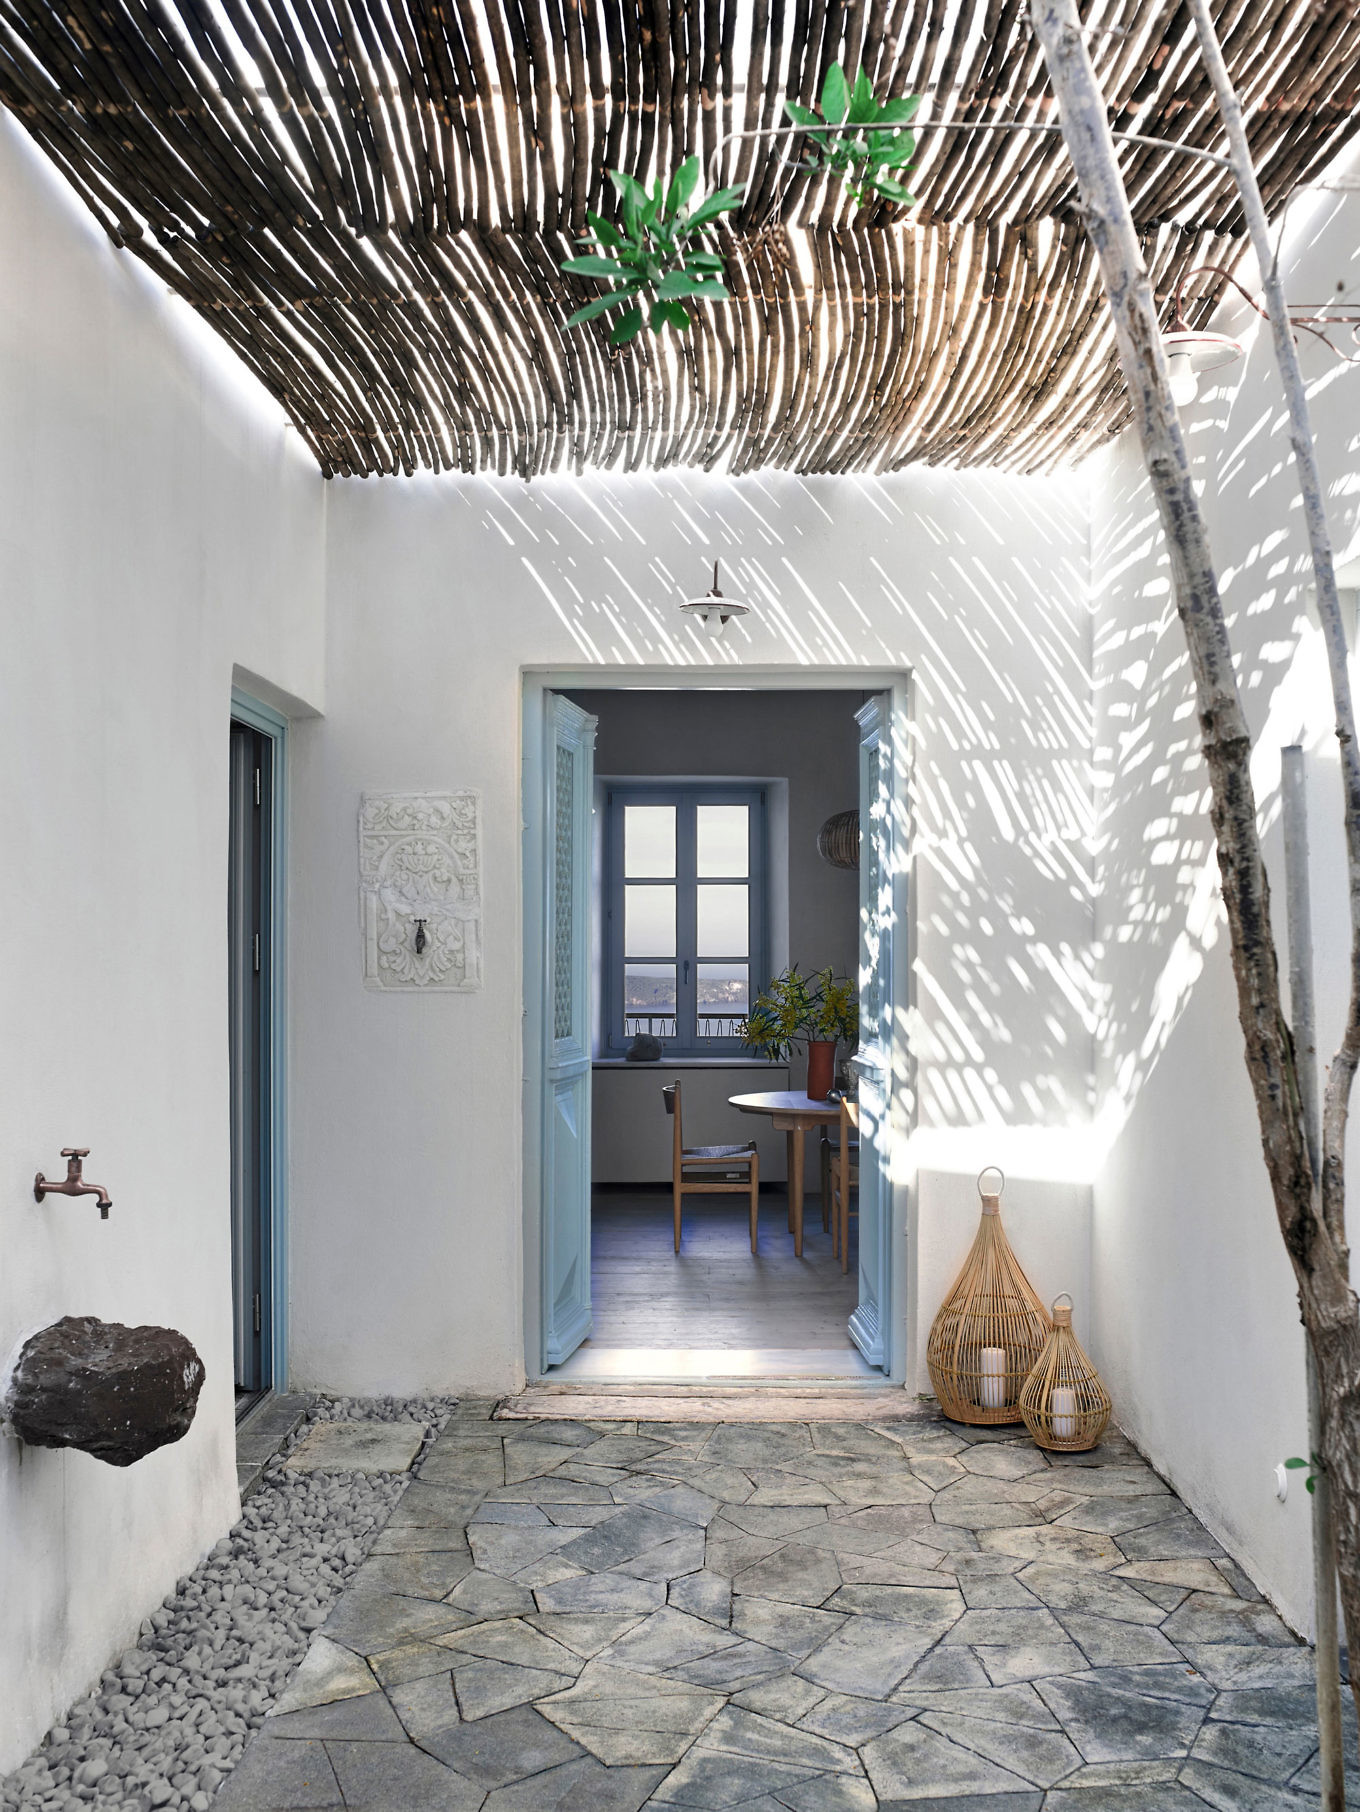 Be Amazed By This Summer House Retreat In Greece! 7 summer house retreat Be Amazed By This Summer House Retreat In Greece! Be Amazed By This Summer House Retreat In Greece 7